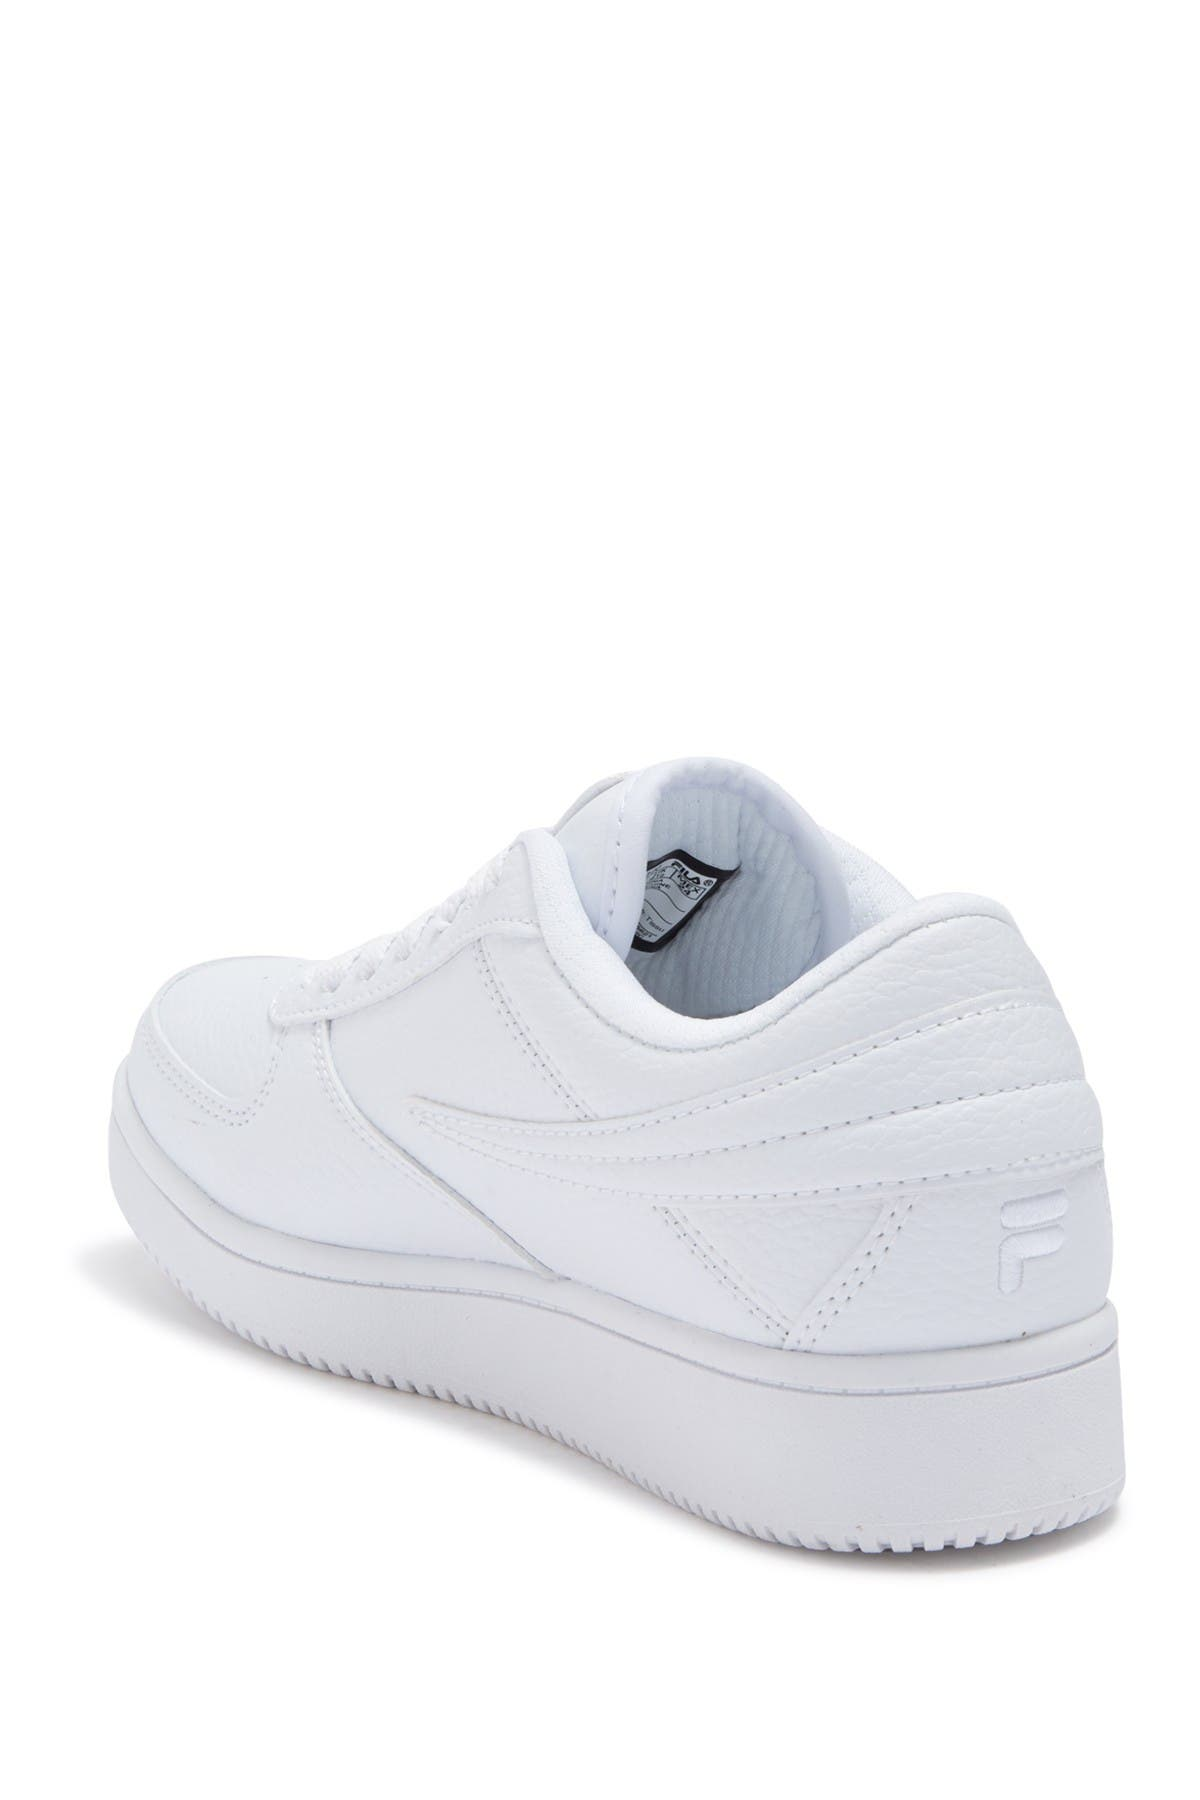 Image of FILA USA A-Low Sneaker